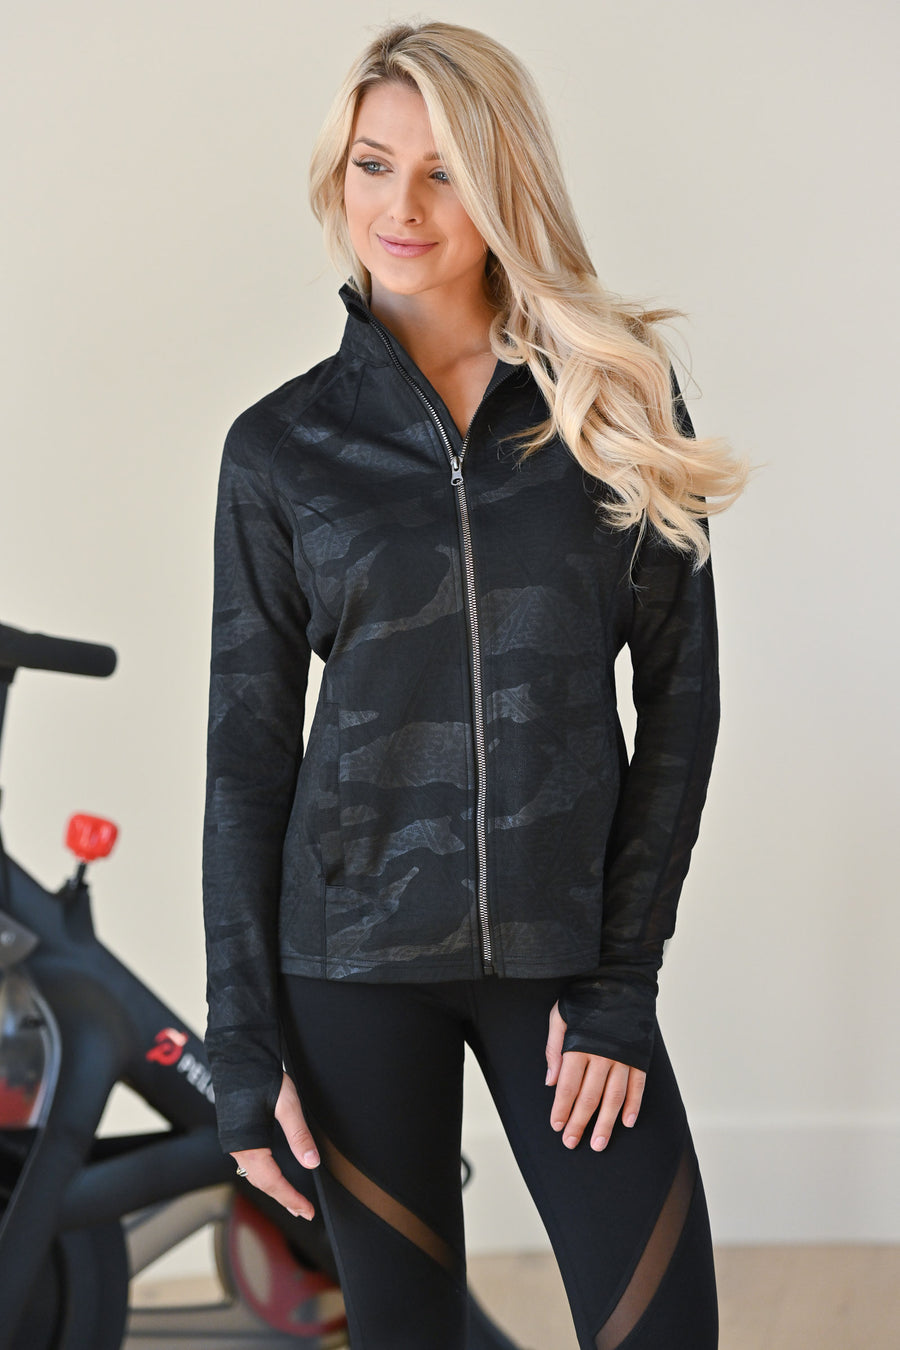 Crushing Goals Camo Jacket - Black women's athletic jacket with camo print, closet candy boutique 1